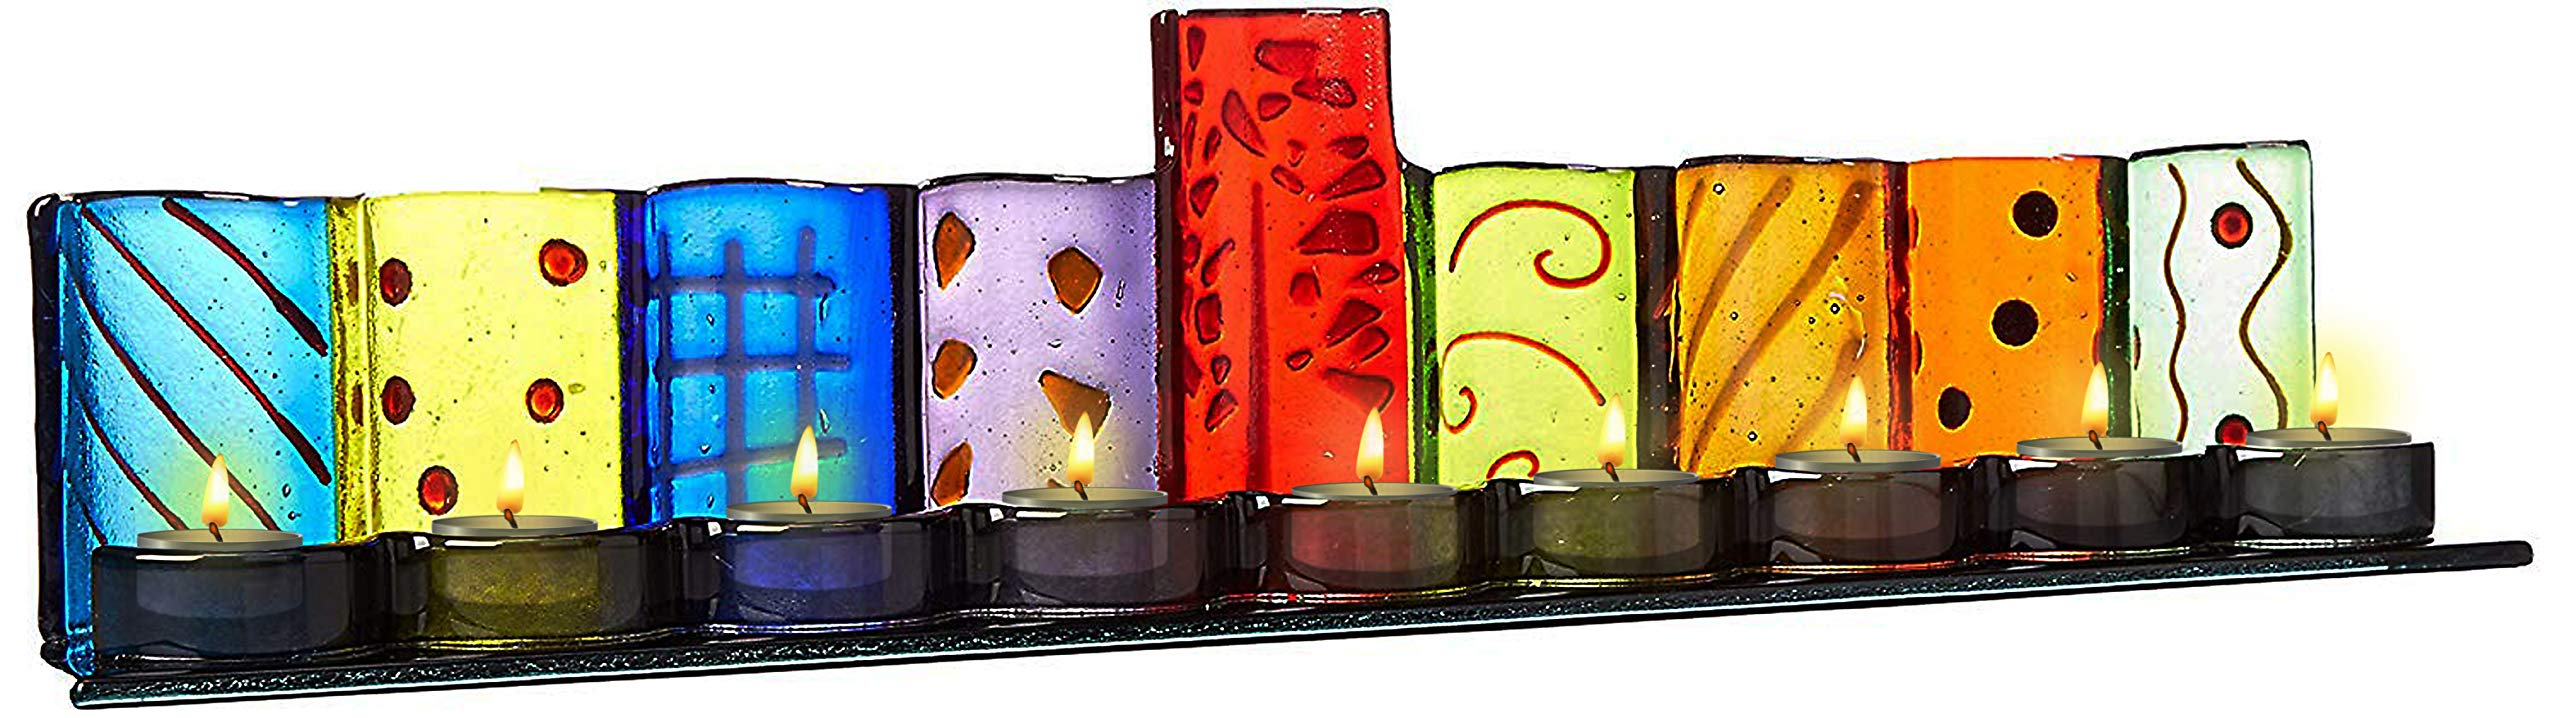 Ner Mitzvah Glass Tealight Candle Menorah - Extra Large for Tea Lights - Handcrafted Colorful Glass Menora with Painted Designs by Ner Mitzvah